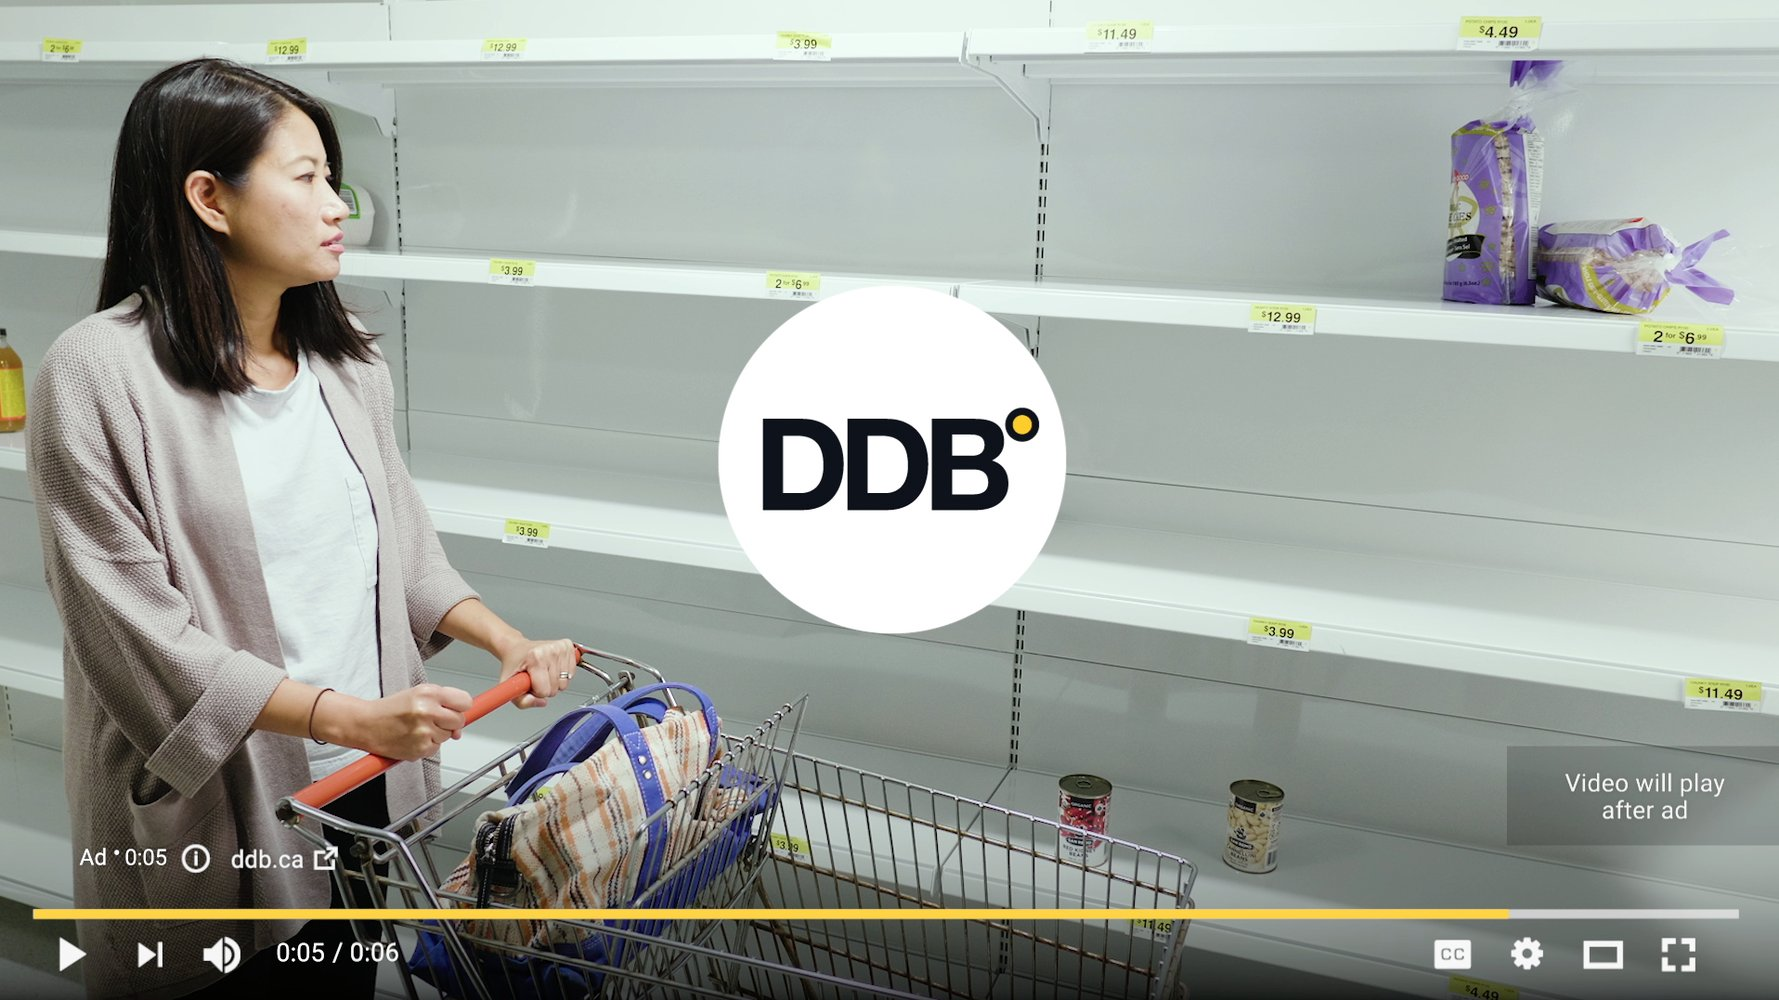 DDB is known for getting products off the shelves.